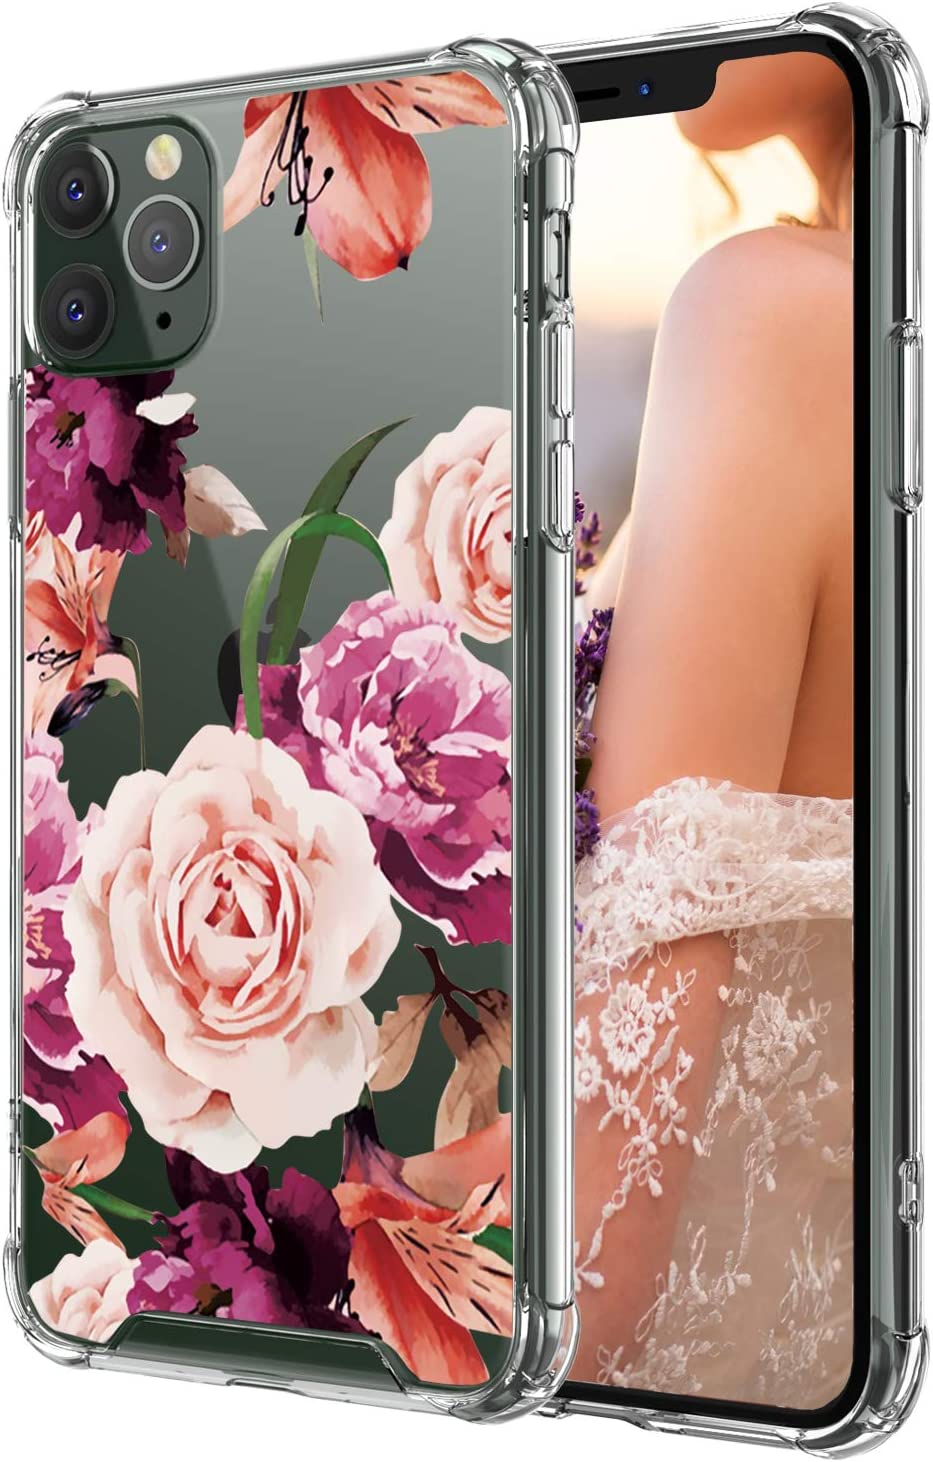 Cutebe Case for iPhone 11 Pro Max, Shockproof Series Hard PC+ TPU Bumper Protective Case for Apple iPhone 11 Pro Max 6.5 Inch Floral